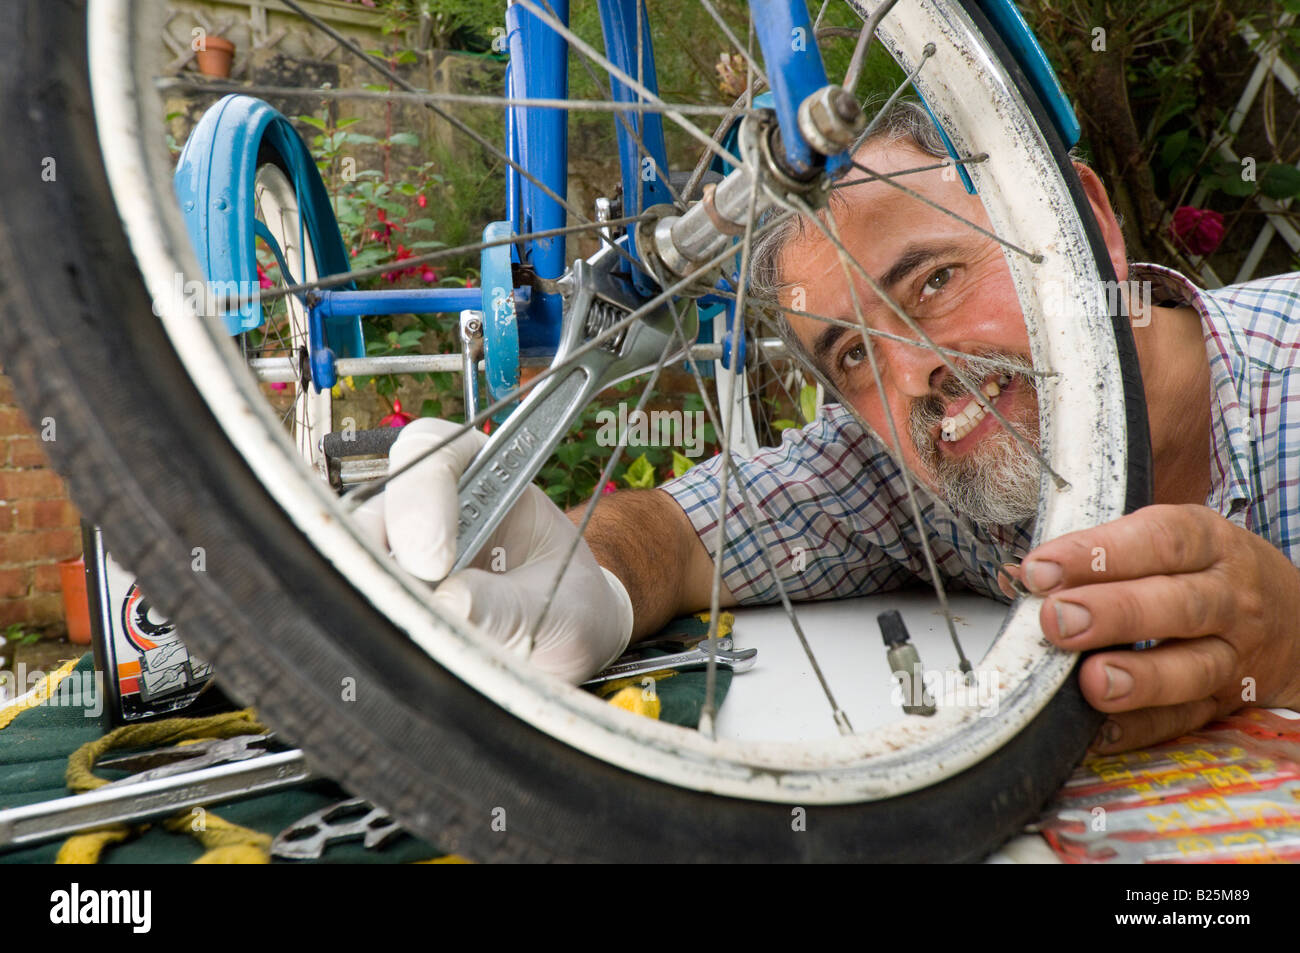 A man repairing a childs tricycle - Stock Image